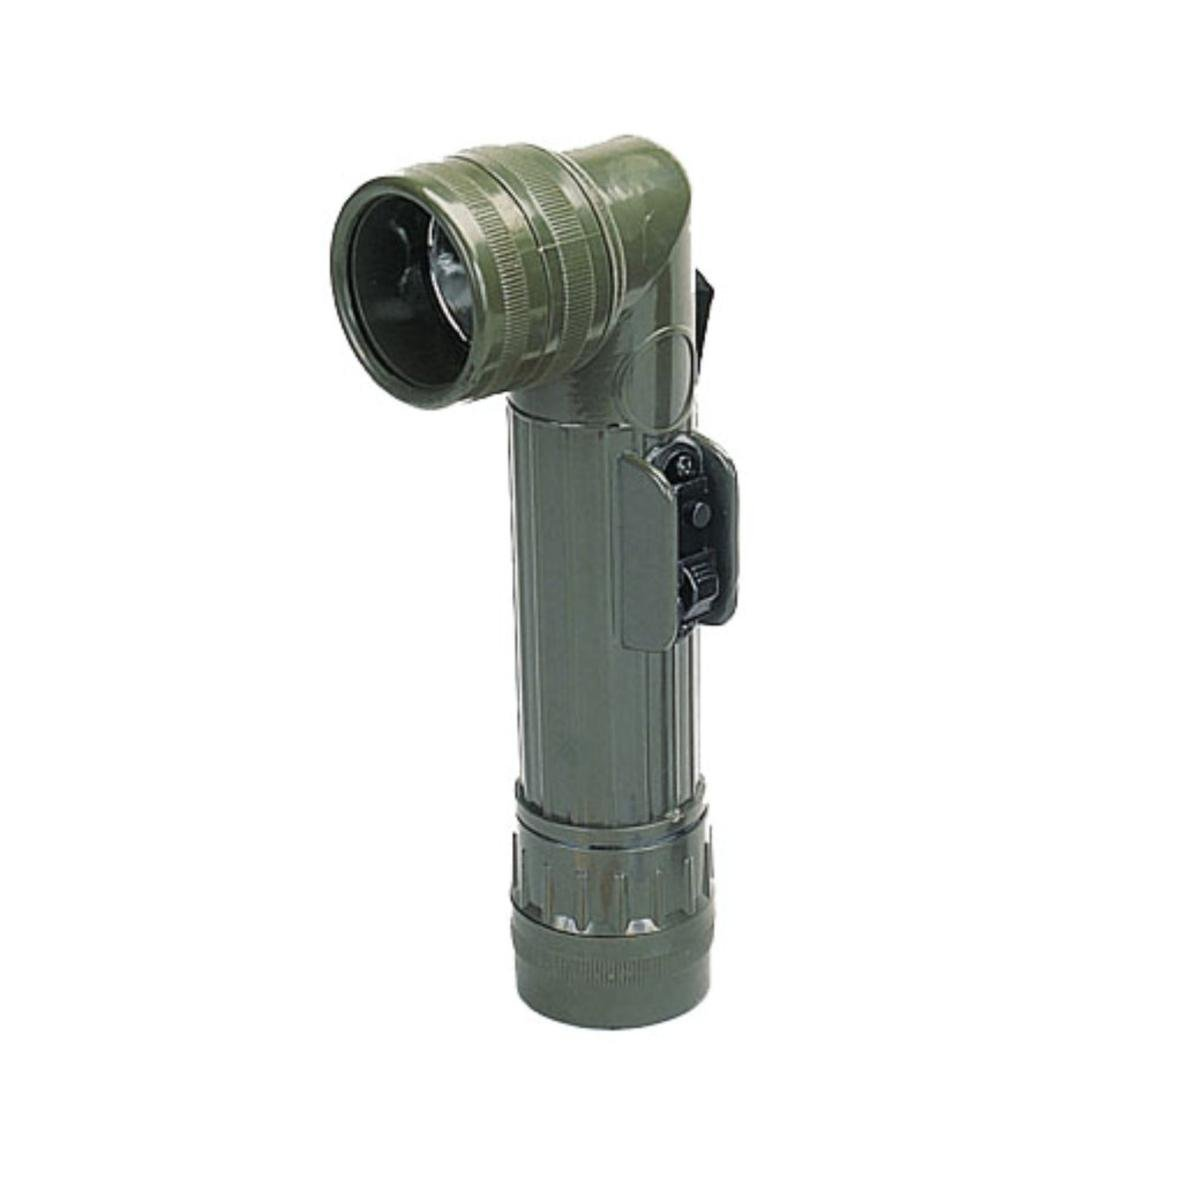 Rothco G.I. Type O.D. D-Cell Flashlights, Olive Drab